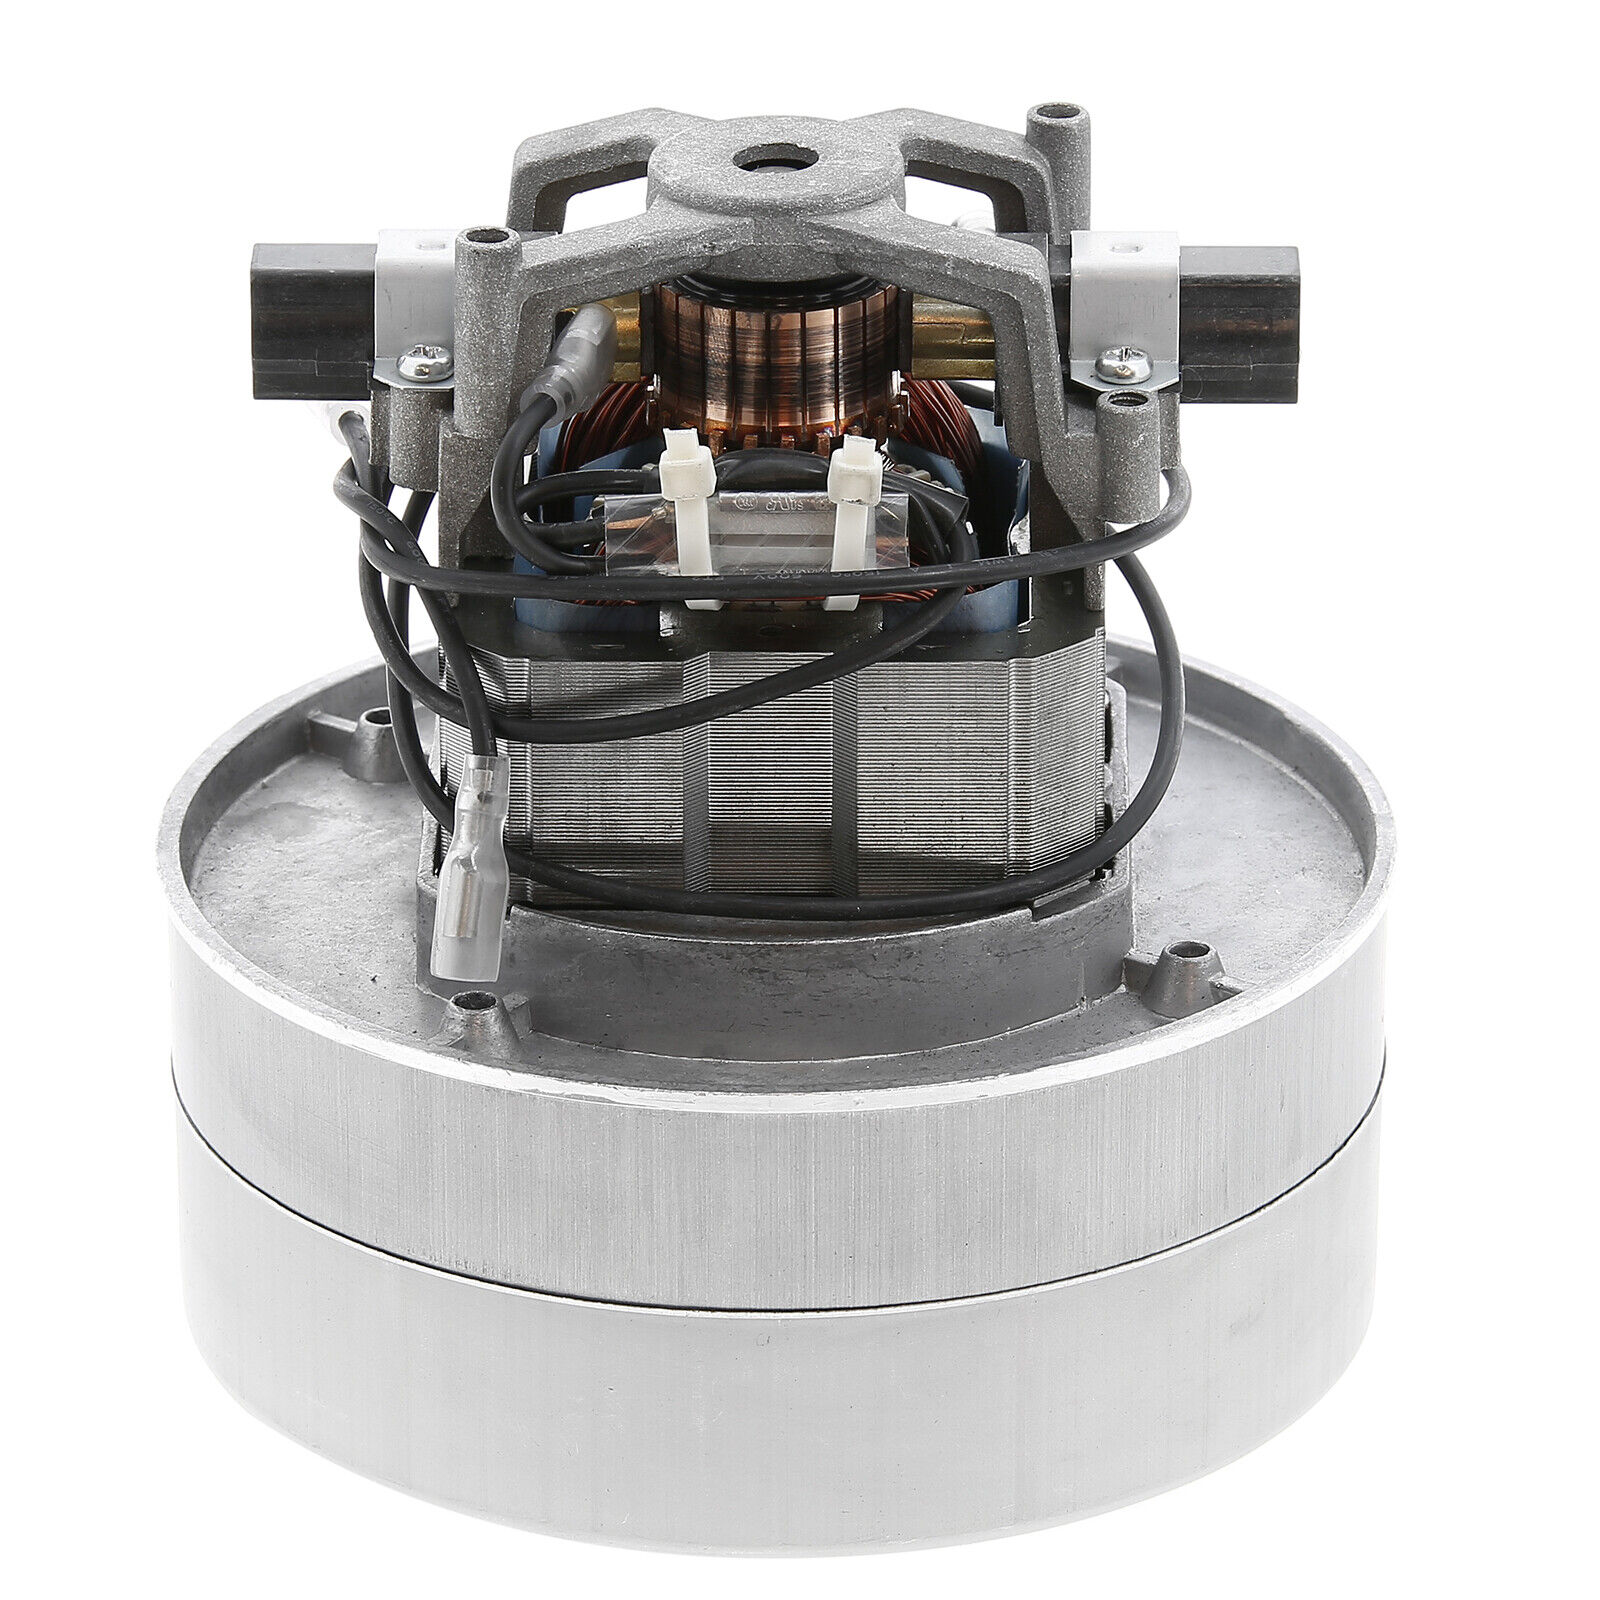 Numatic Henry TCO DL2 1104T Vacuum Cleaner Hoover Compatible Motor 205403